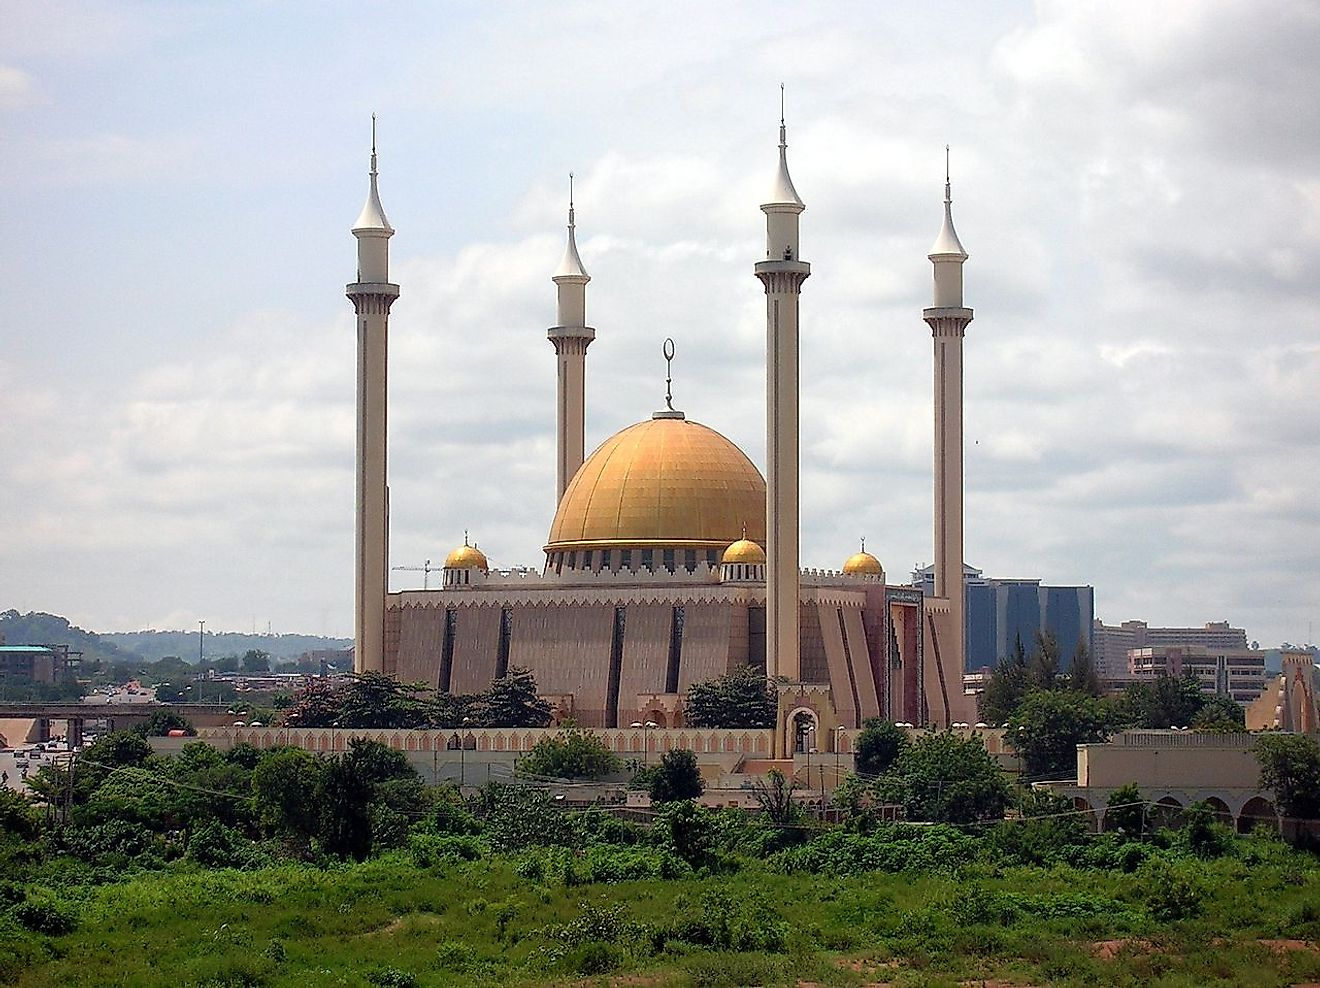 Abuja National Mosque in Nigeria. Image credit: Shiraz Chakera/Wikimedia.org